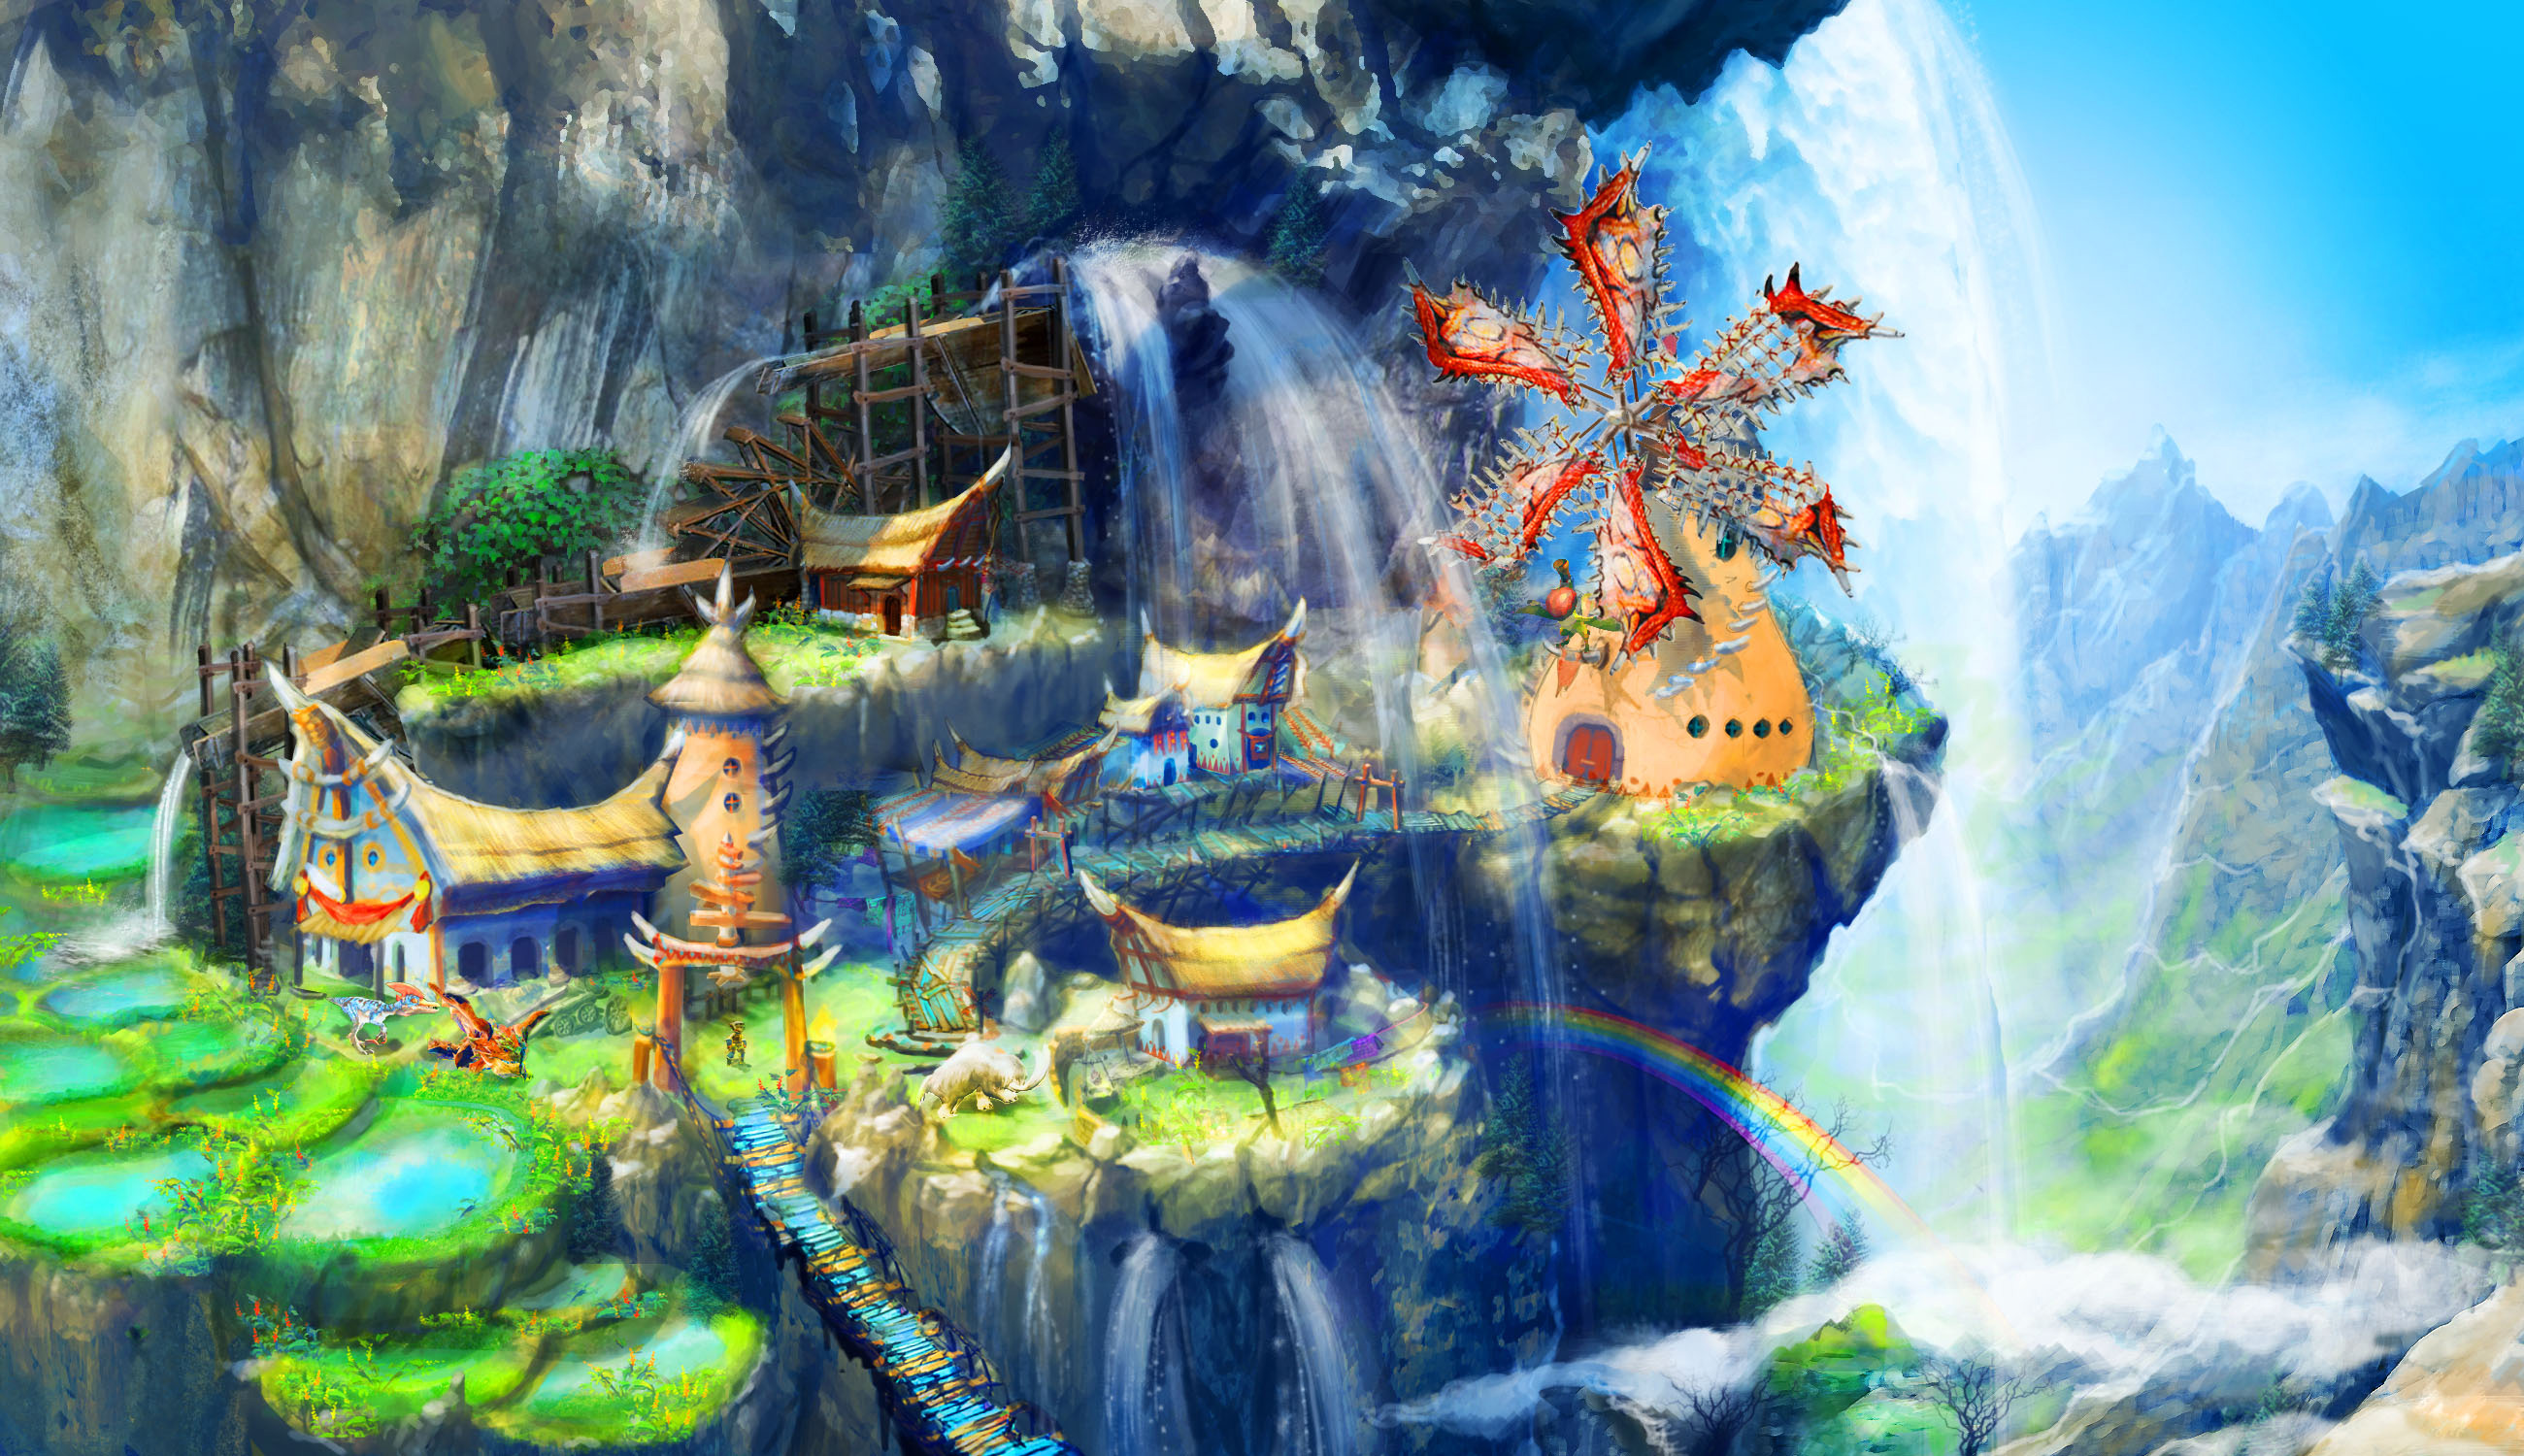 Afbeeldingsresultaat voor monster hunter stories game